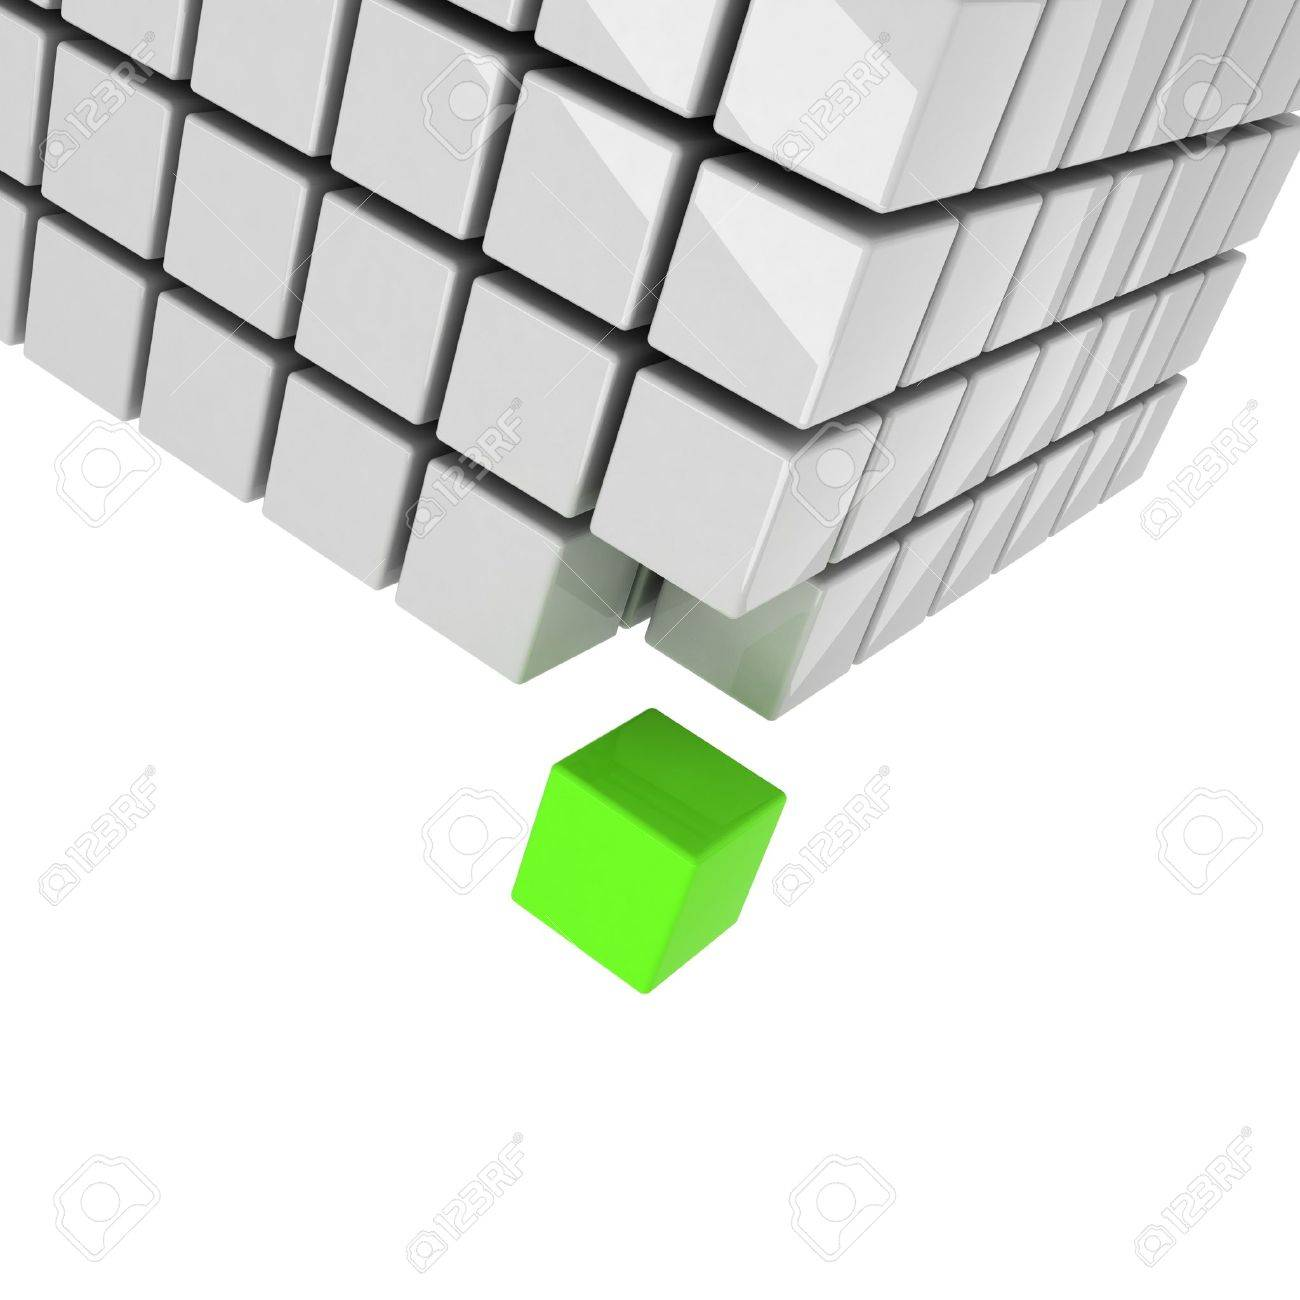 green cube getting detached concept Stock Photo - 11187674